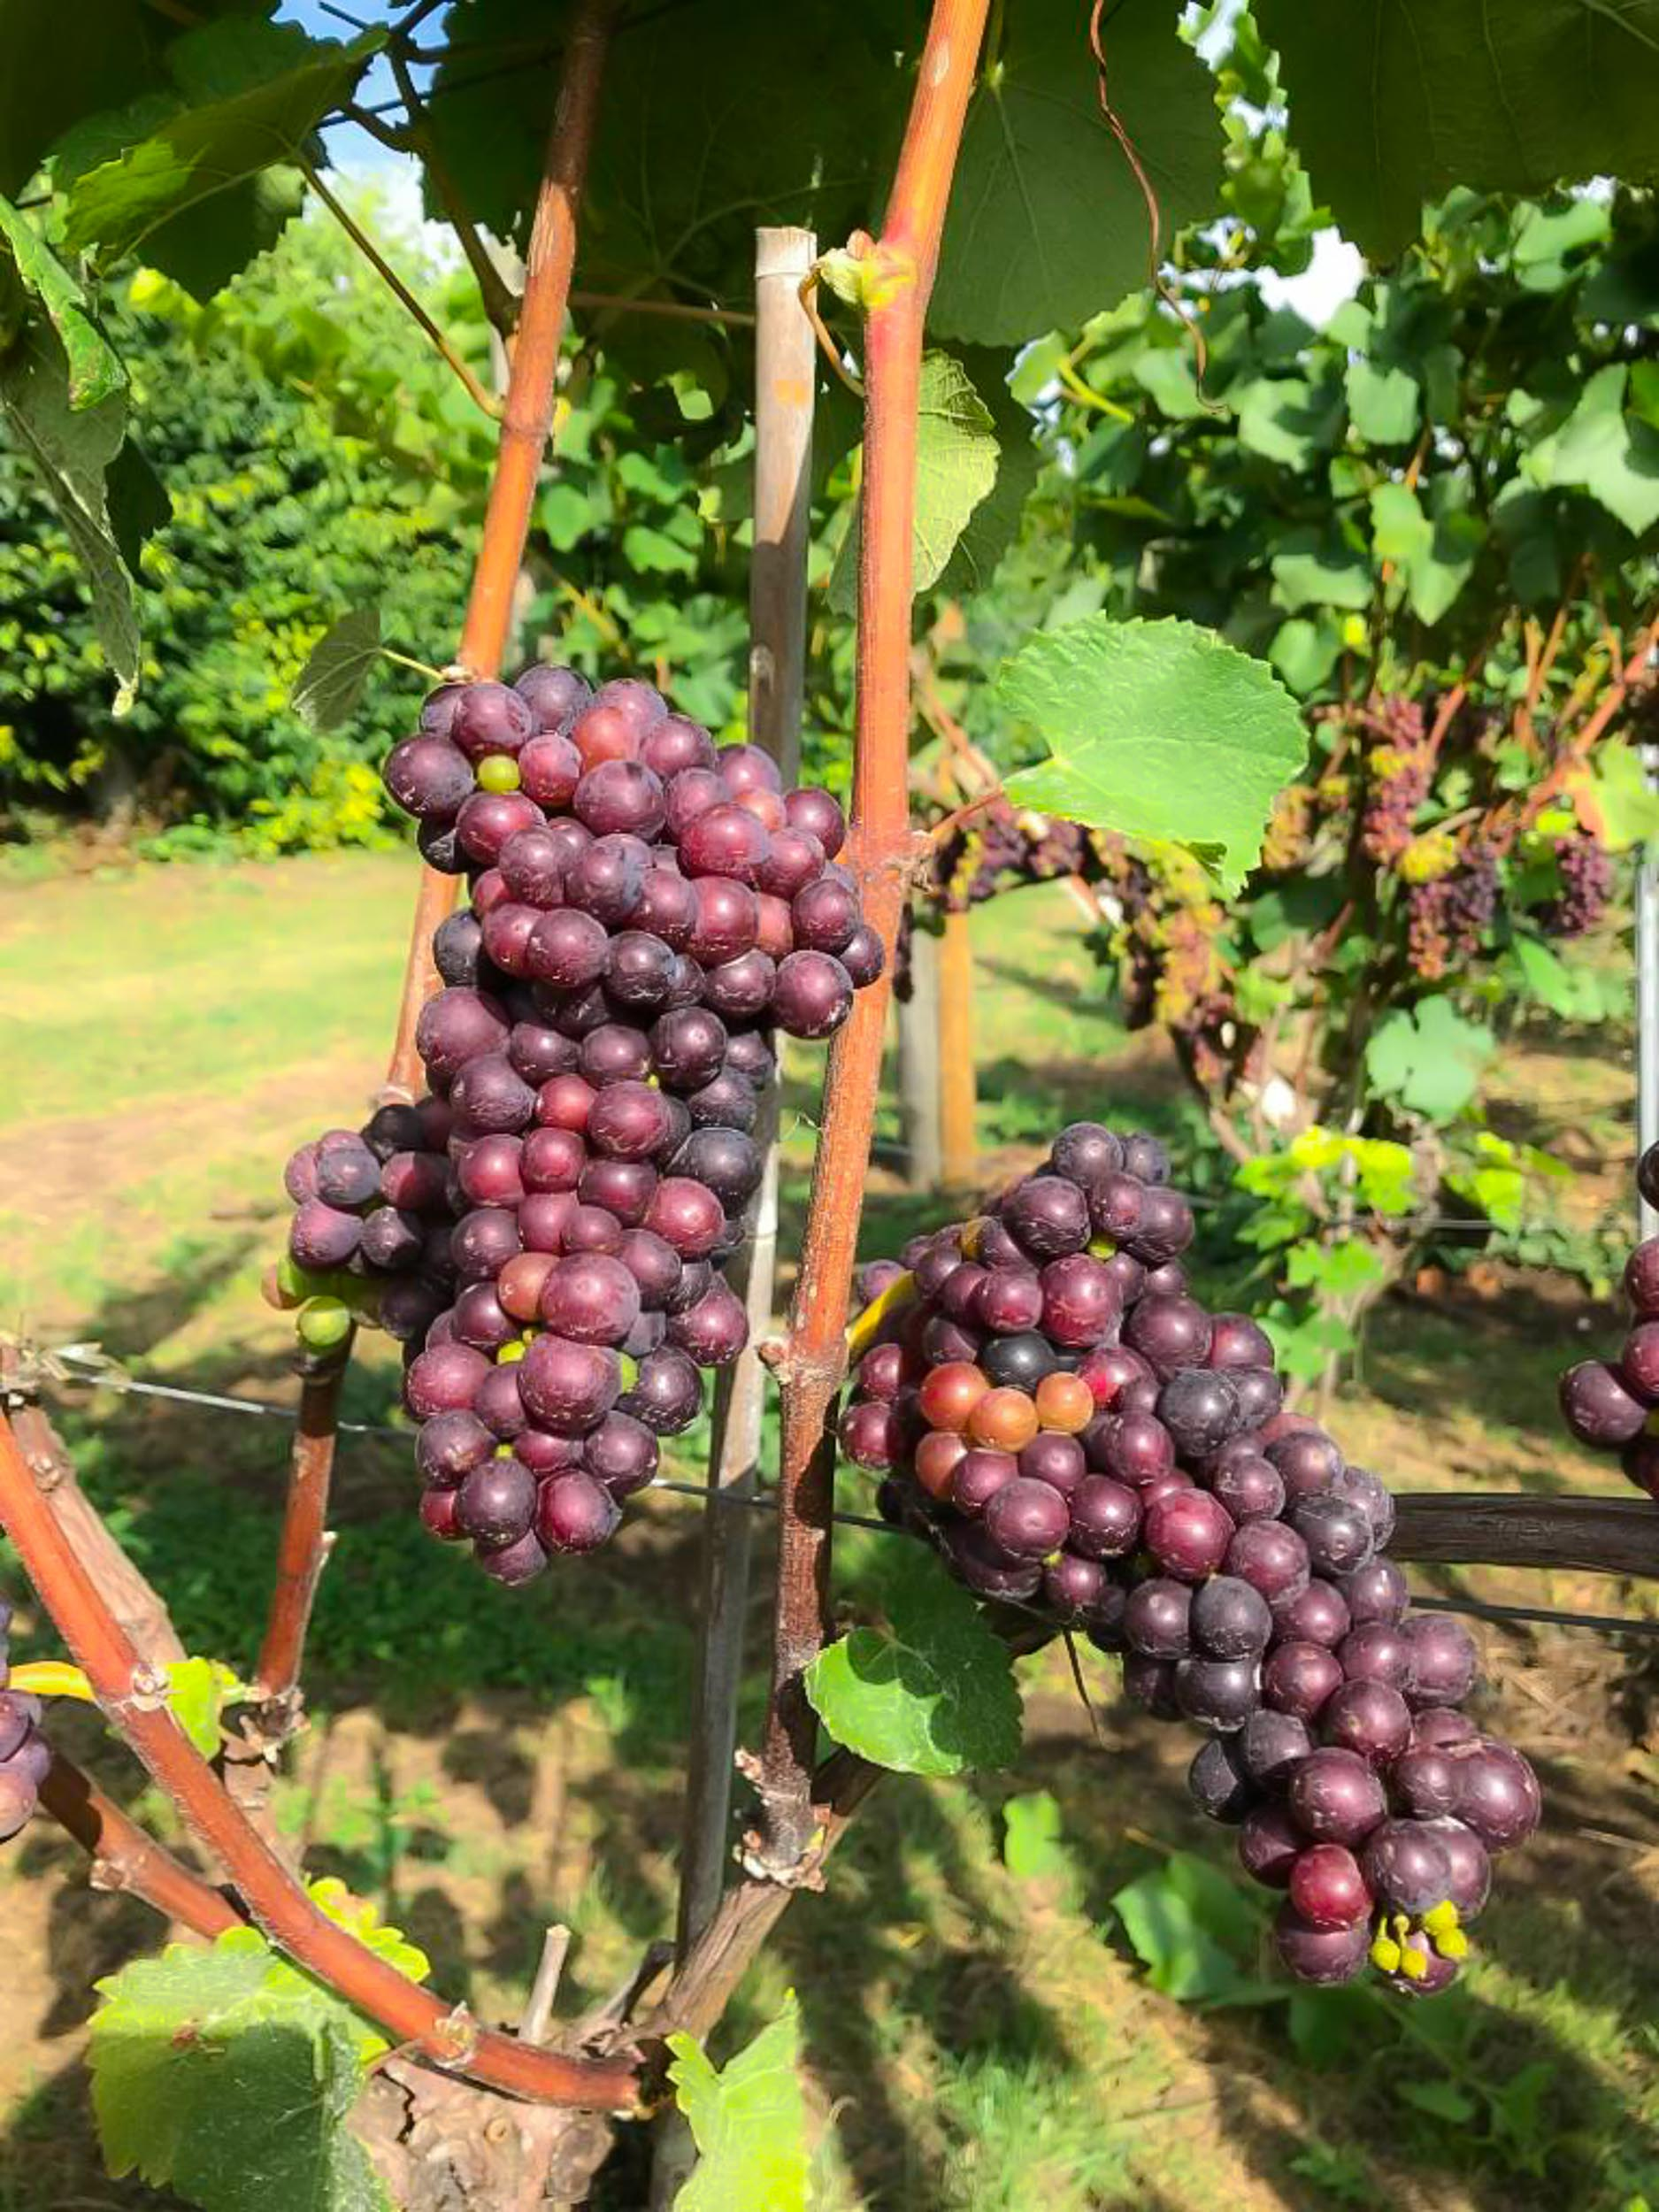 Meopham-Valley-Vineyard-Kent-Grape-Vine-Varieties-Pinot-Noir-3